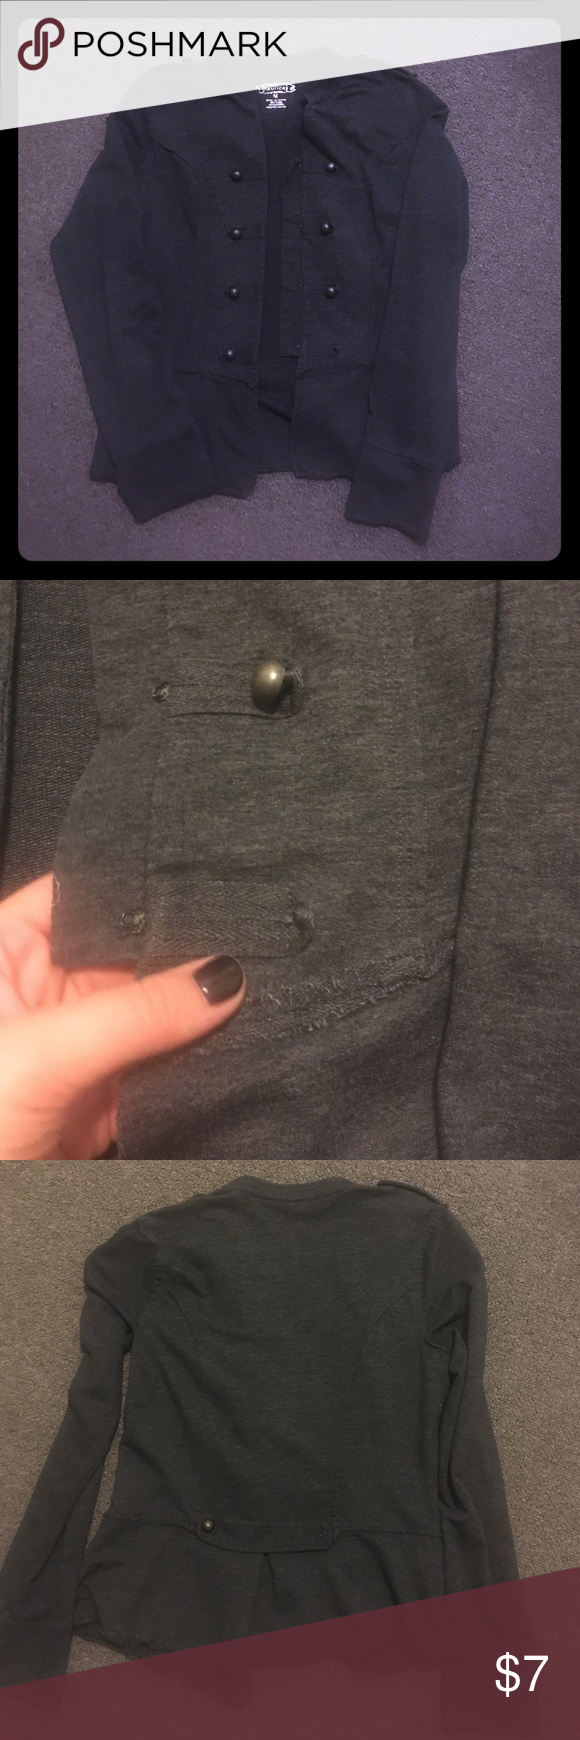 Light jacket Lightweight jacket that can dressed be up or worn casual. It's missing 2 buttons one on the front and one on the back (shown in the pictures) No rips, tears or holes. Comes from a pet-free and smoke-free house. Maurices Jackets & Coats